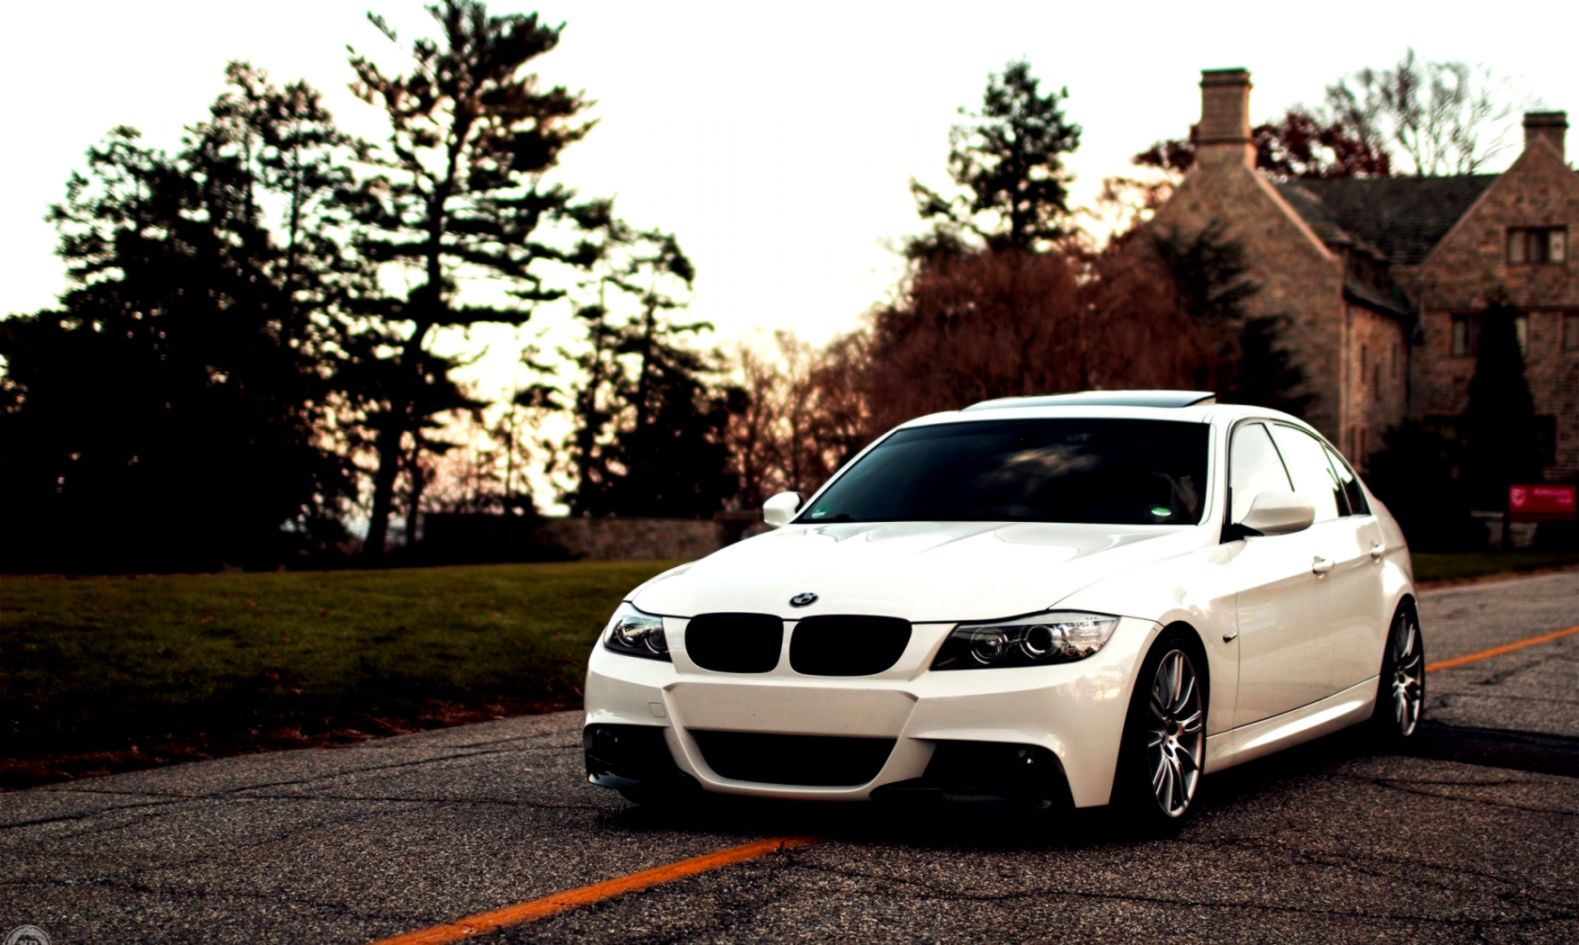 Bmw E90 3 Series White Car Hd Wallpaper Mocihada